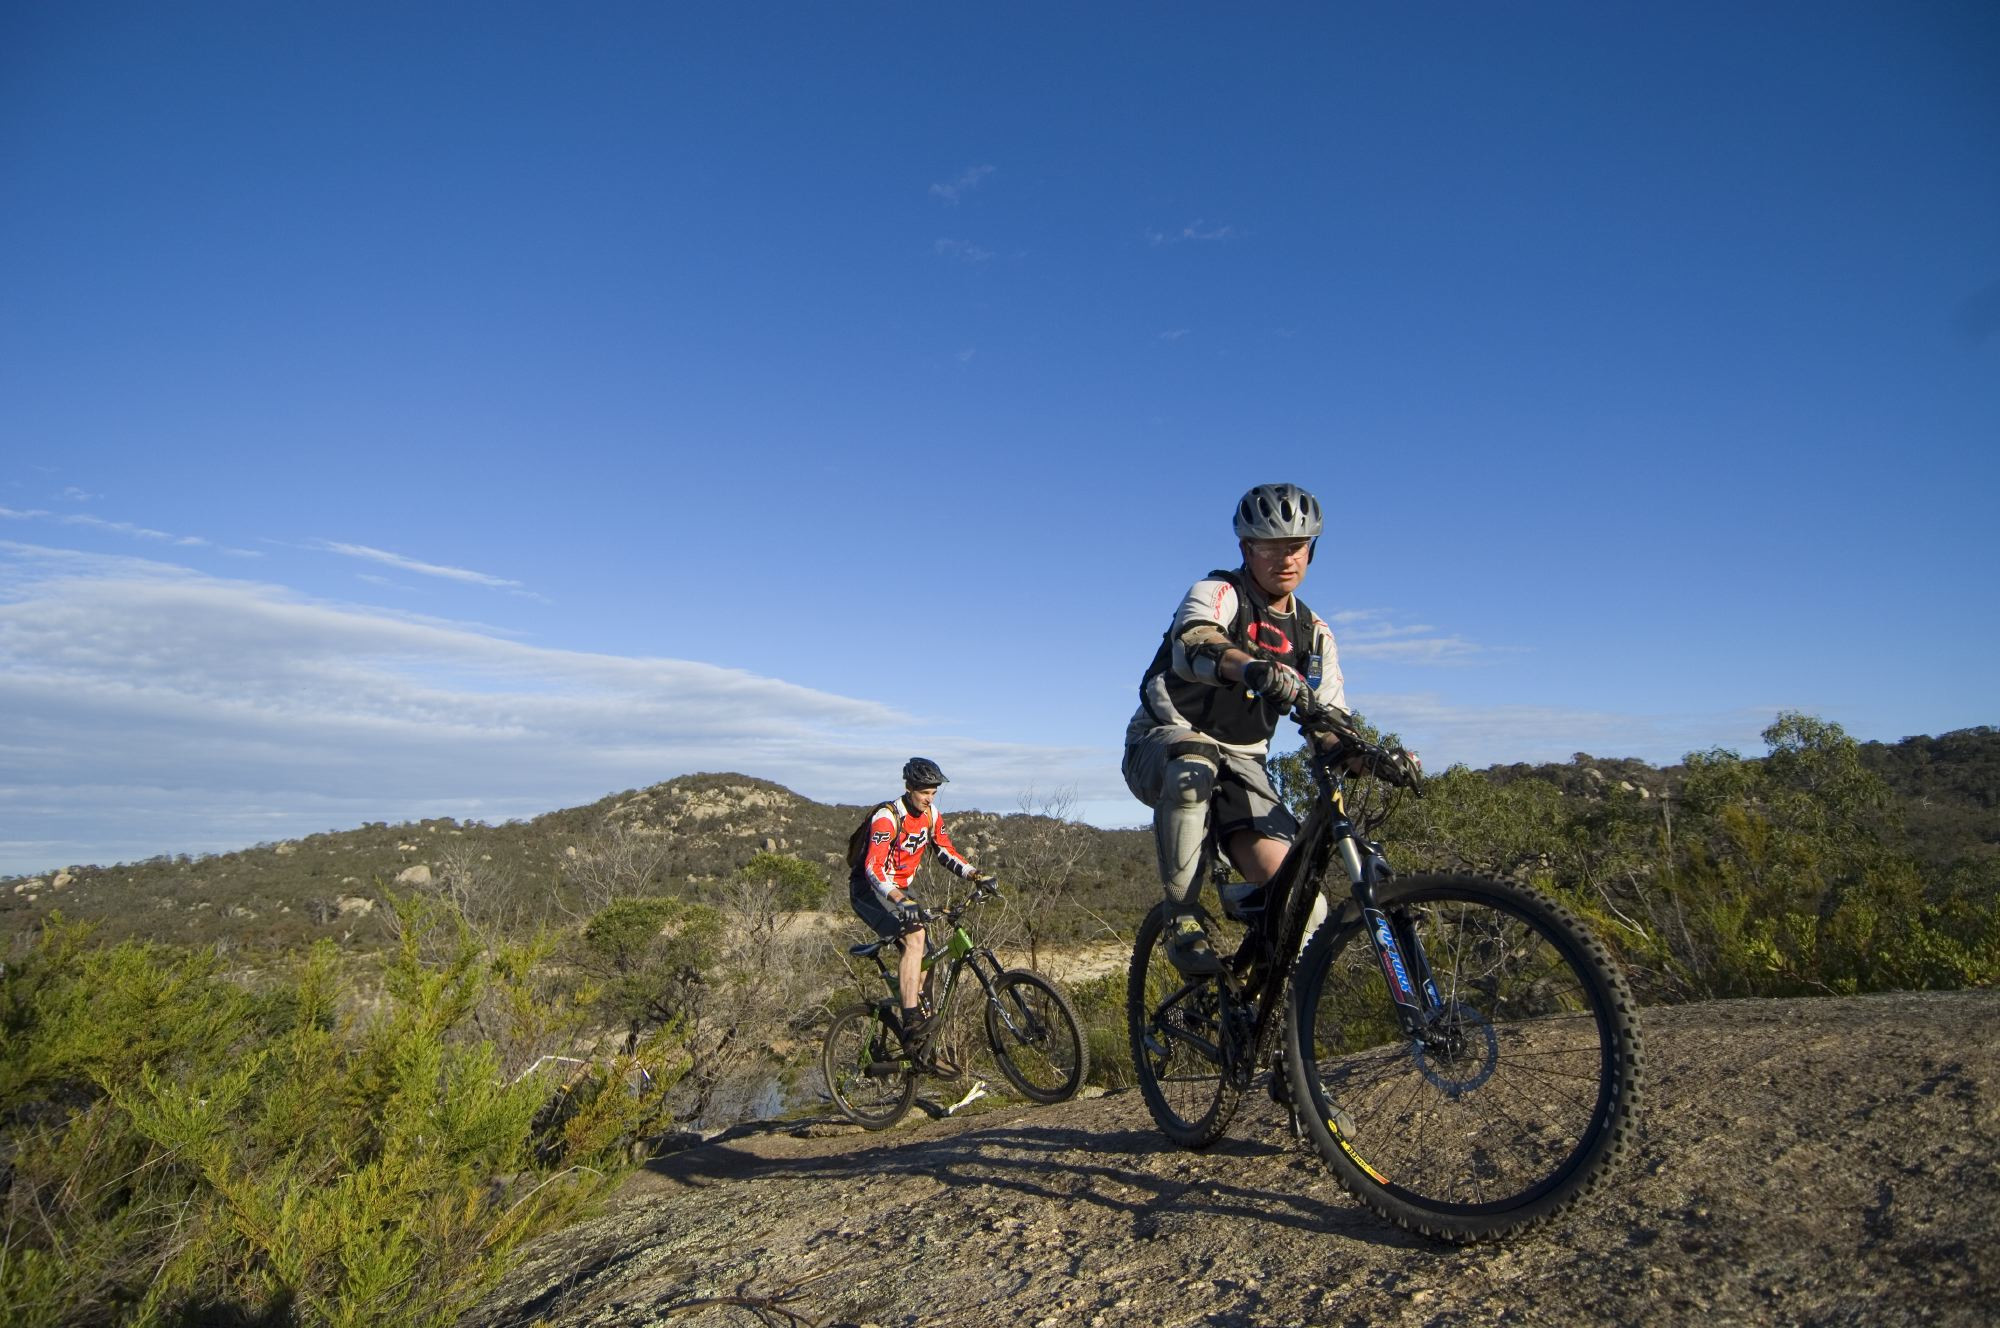 In this image two men ride their bikes over rocks in the You Yangs